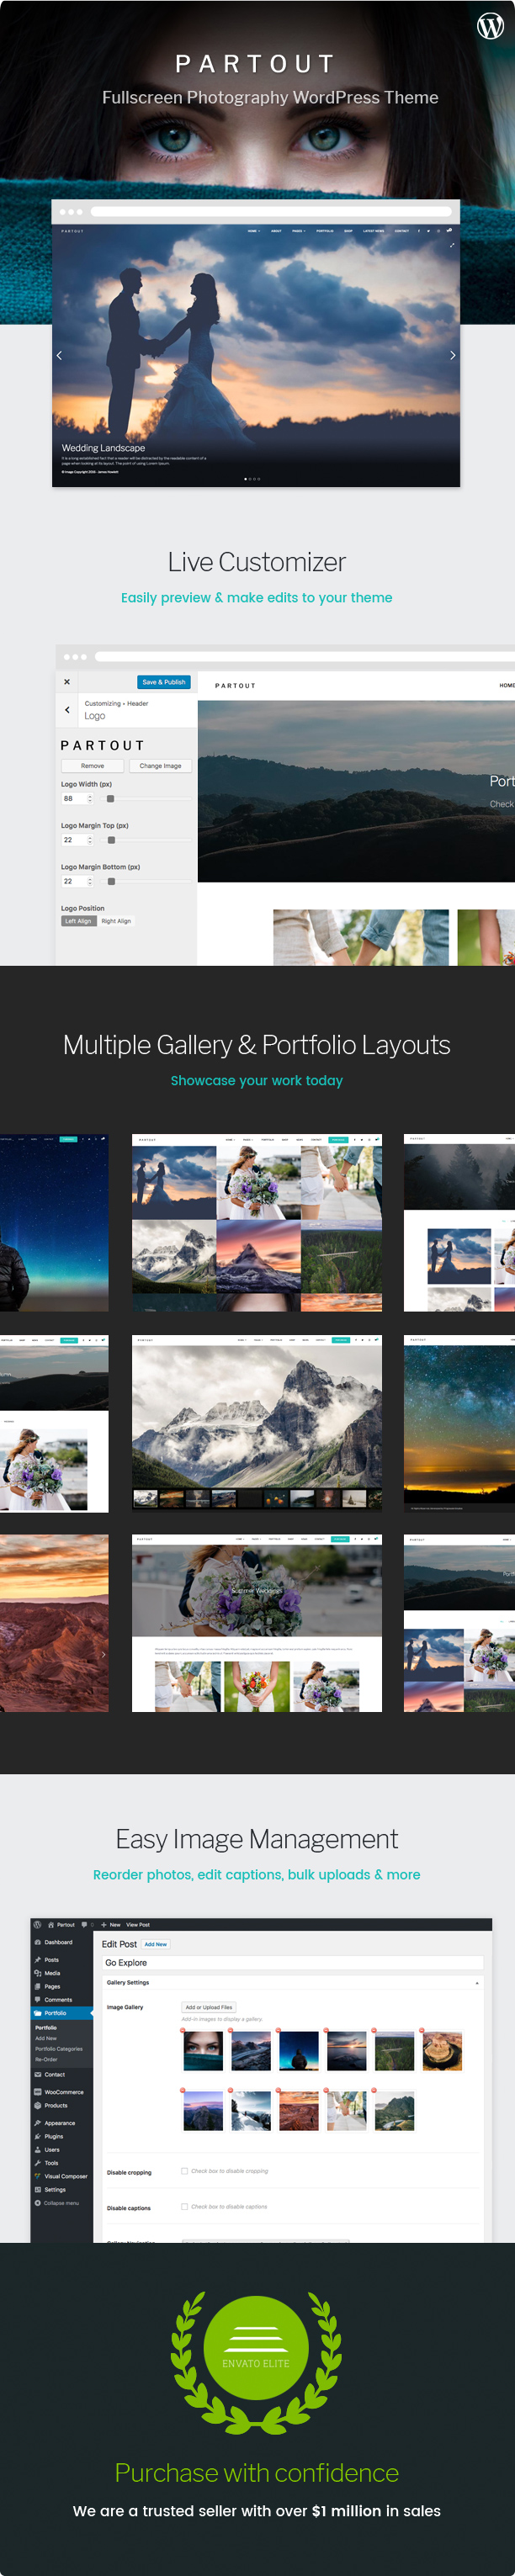 WordPress theme Partout - Fullscreen Photography Theme (Photography)